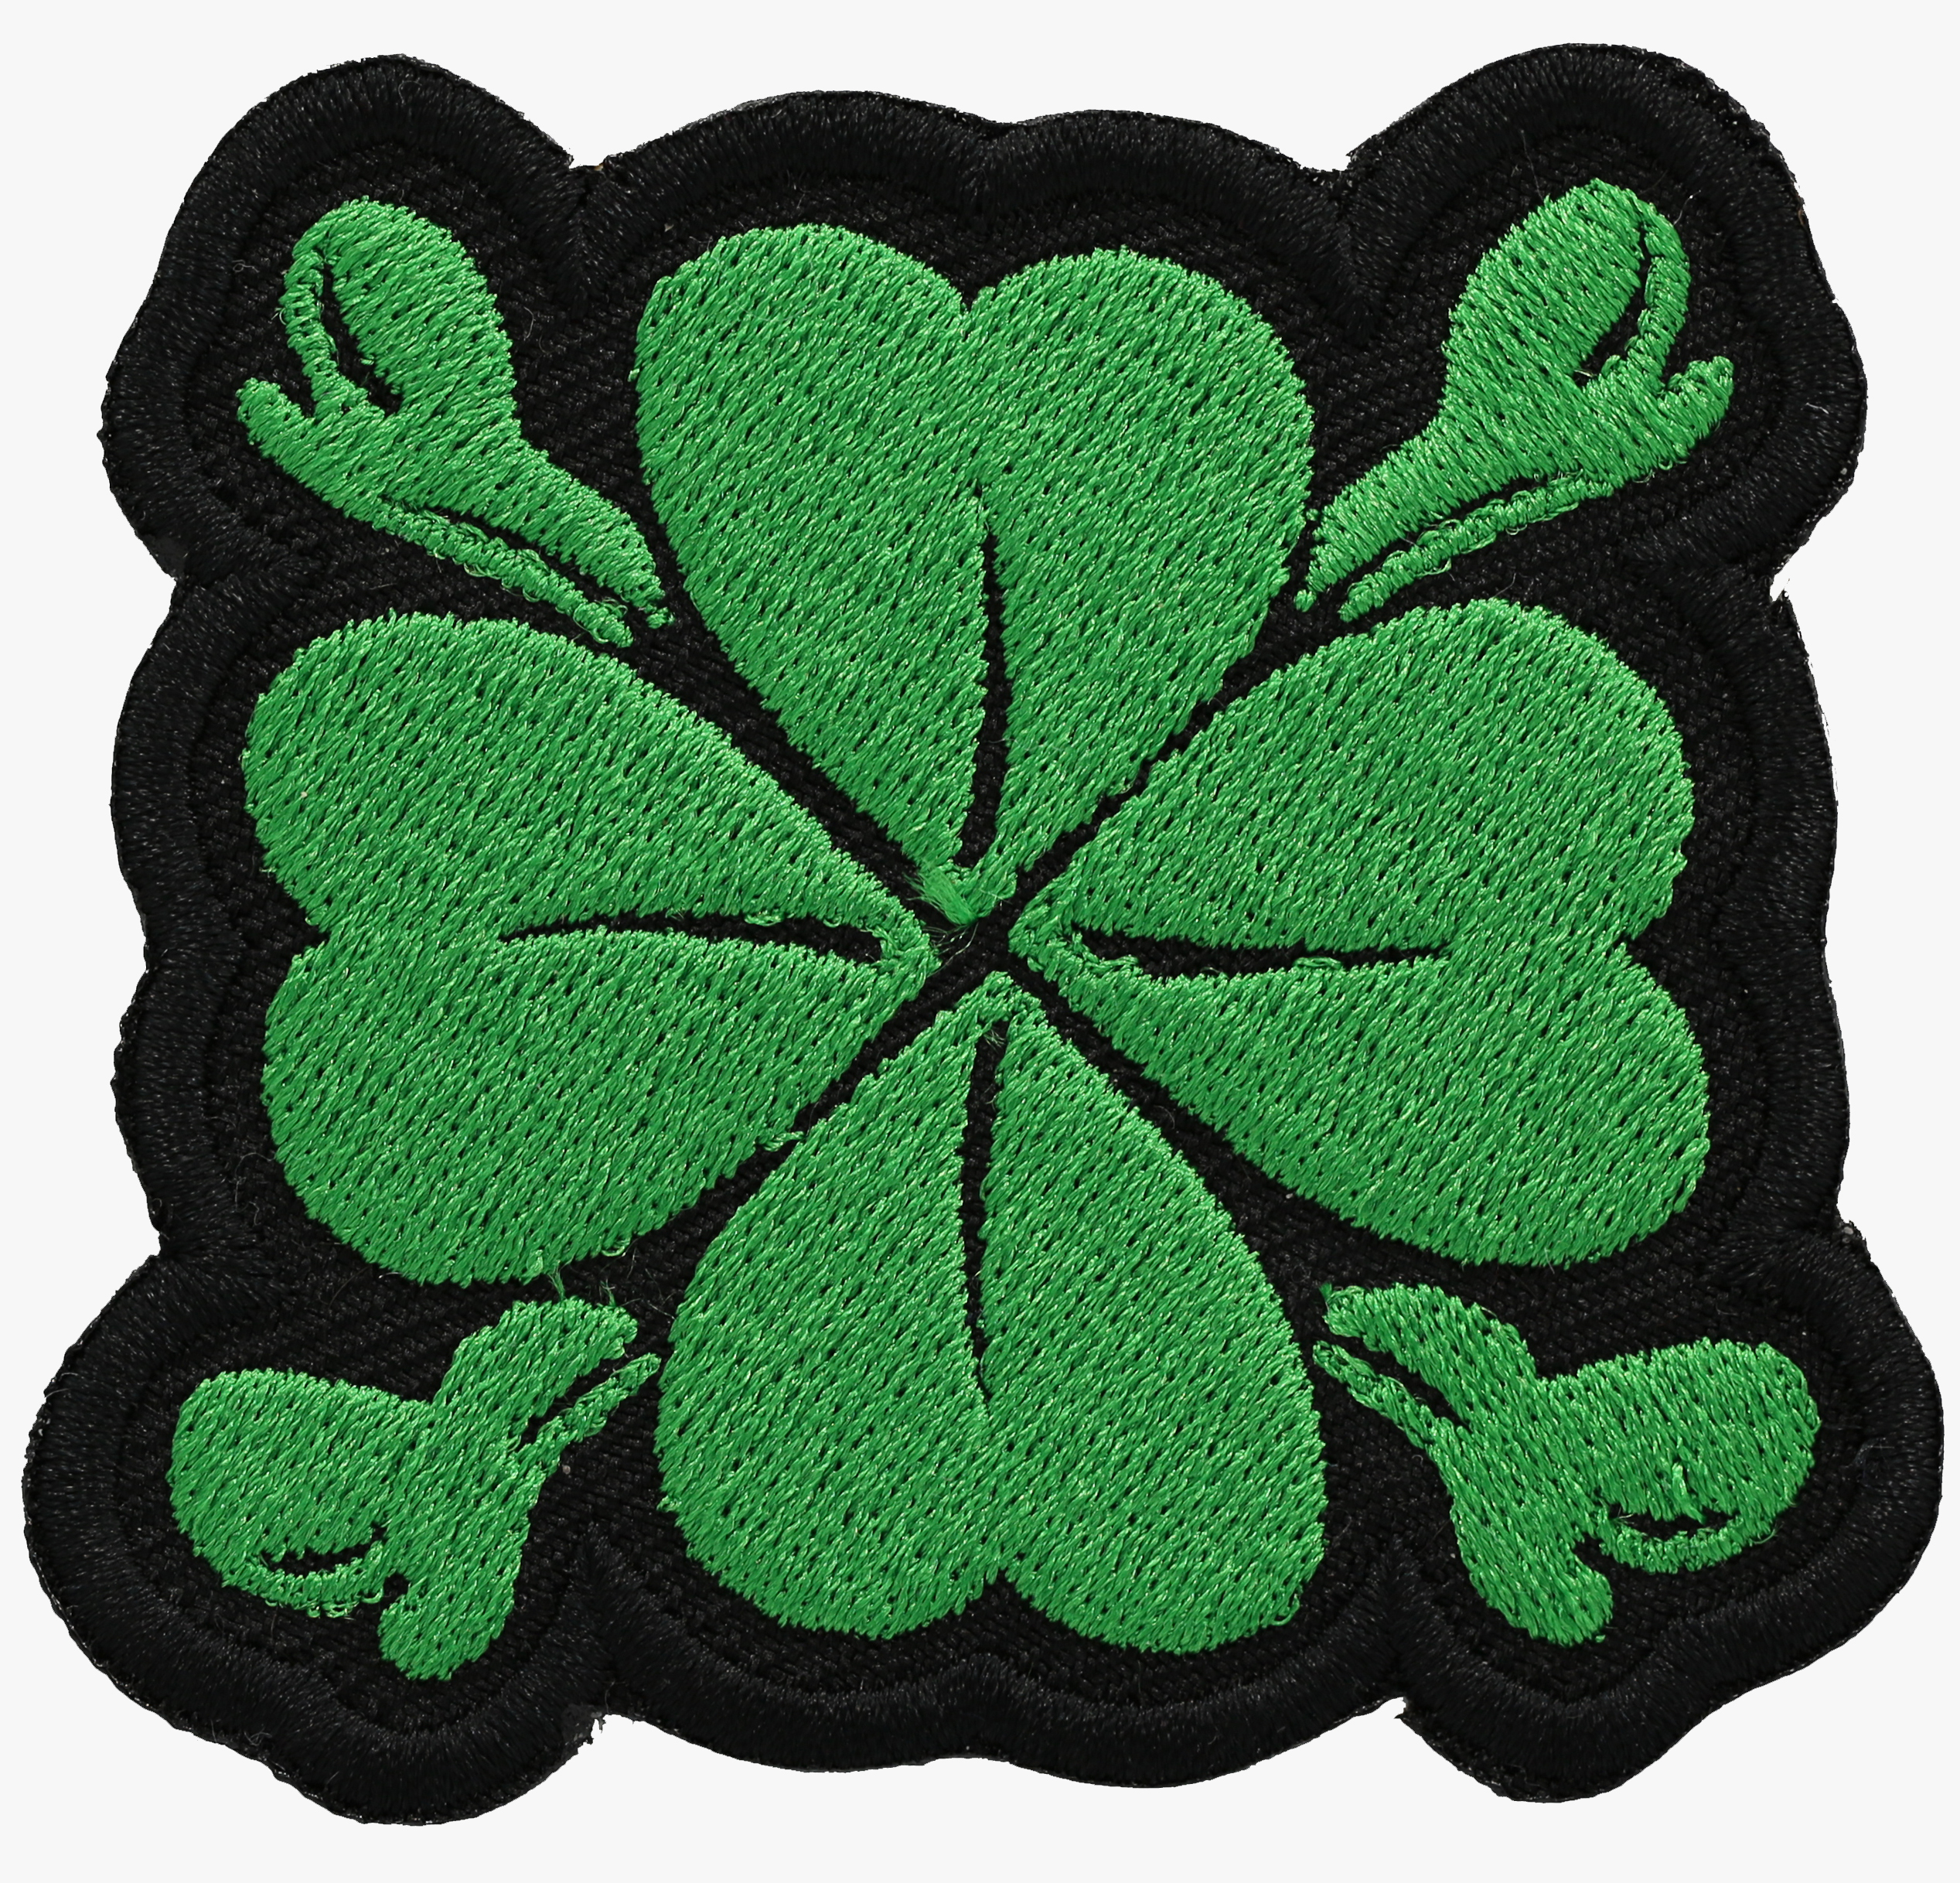 CROSS BONE IRISH GREEN CLOVER PATCH